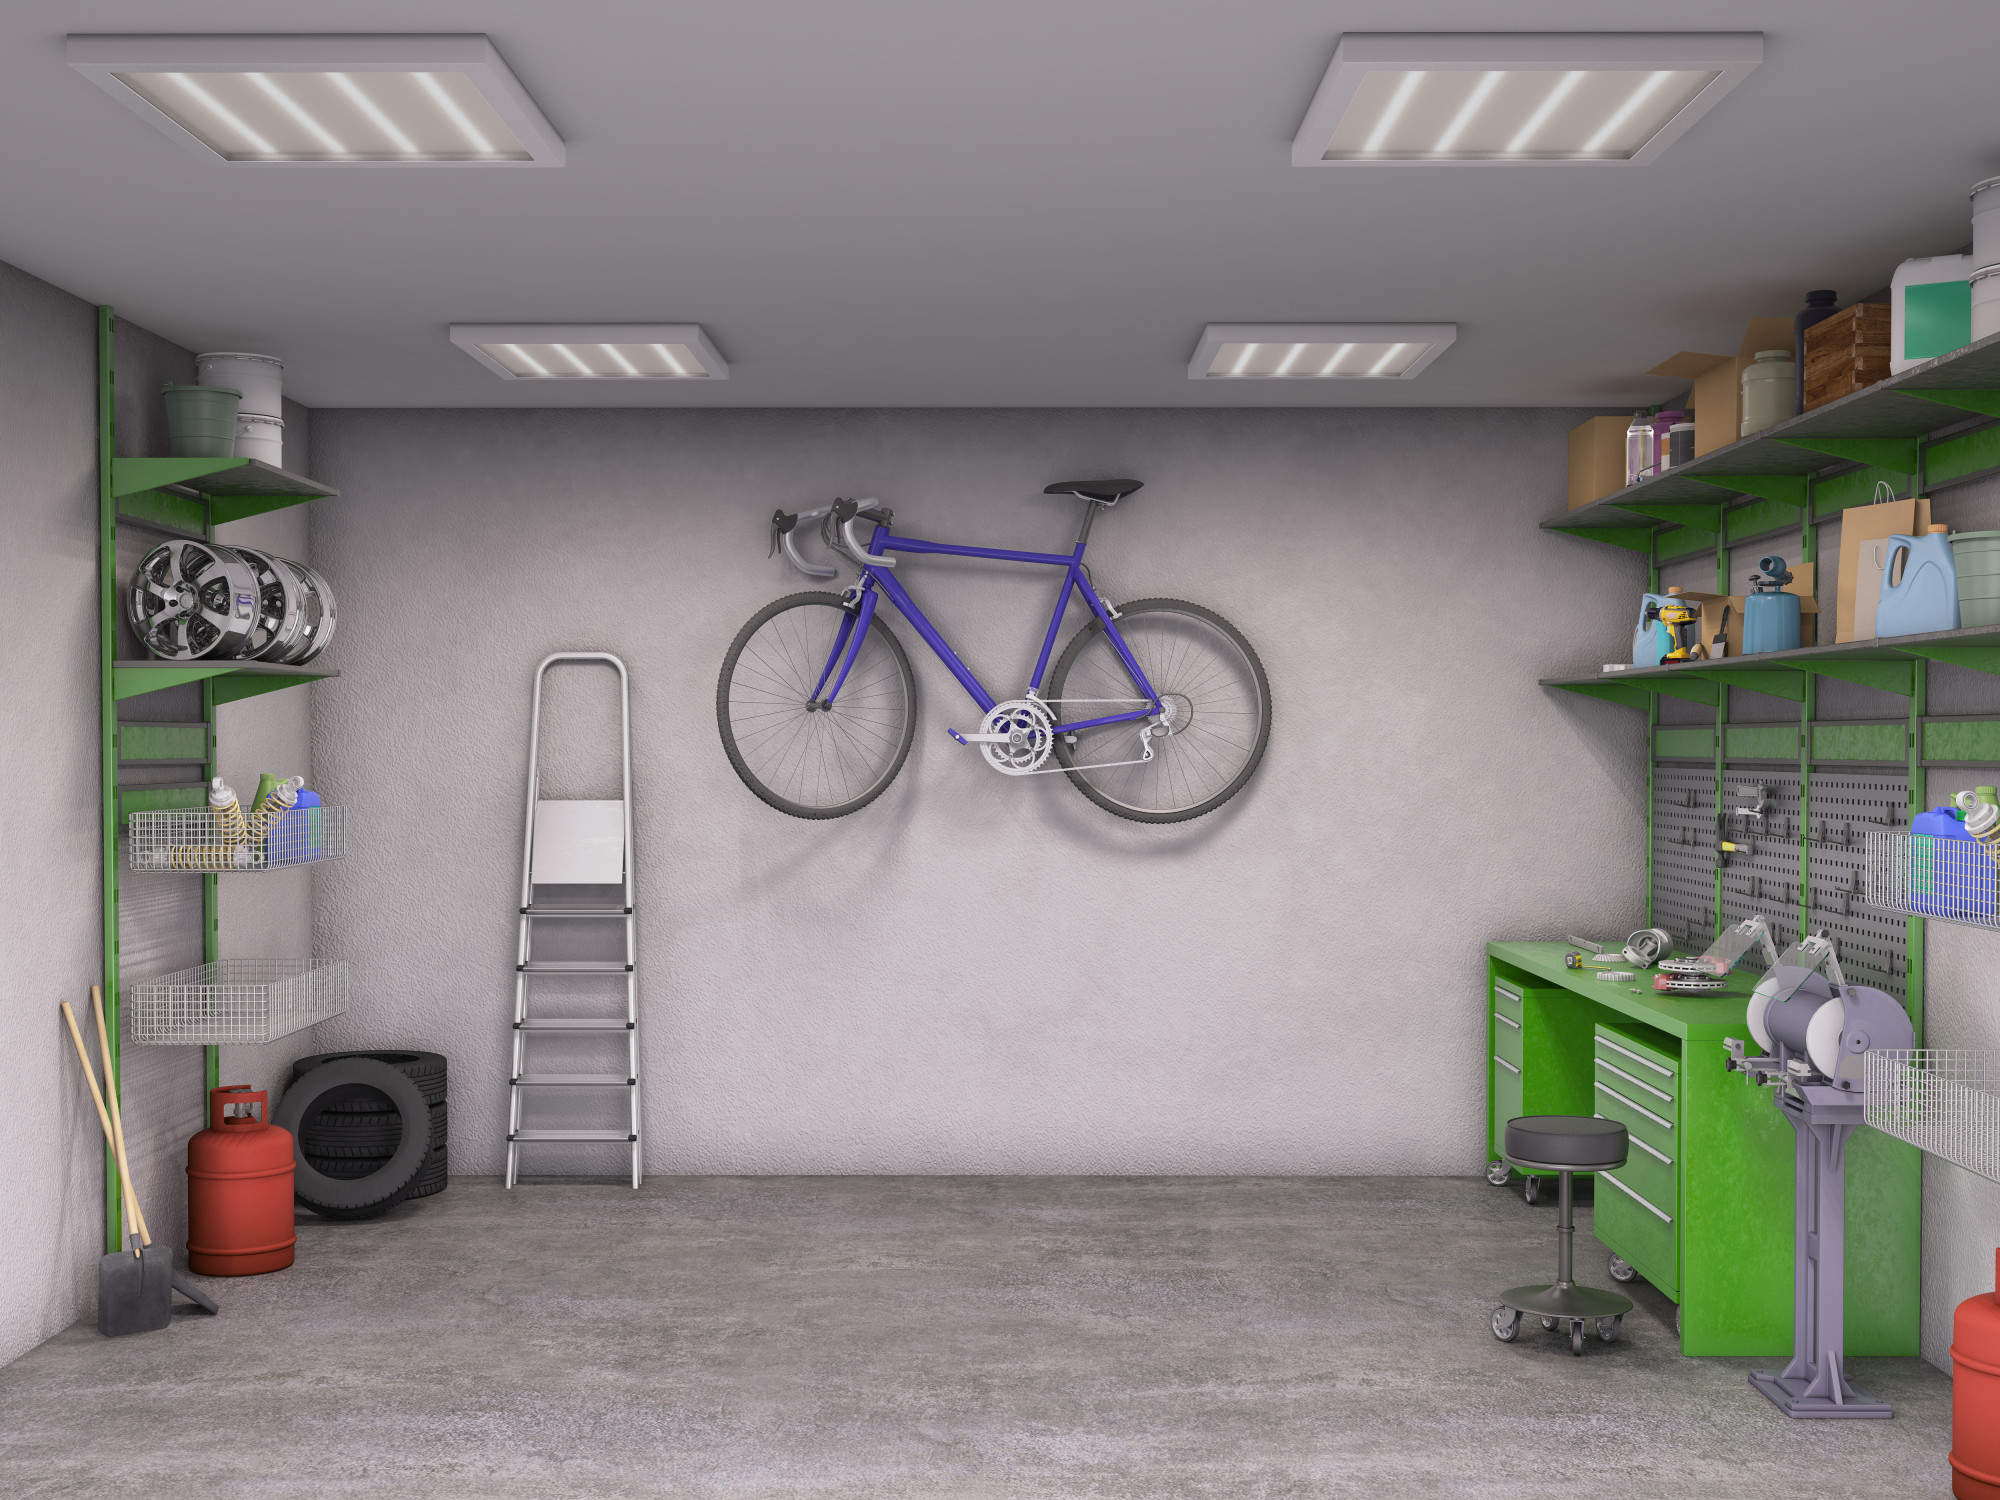 15 Ways You Never Thought of to Organize Your Garage Space